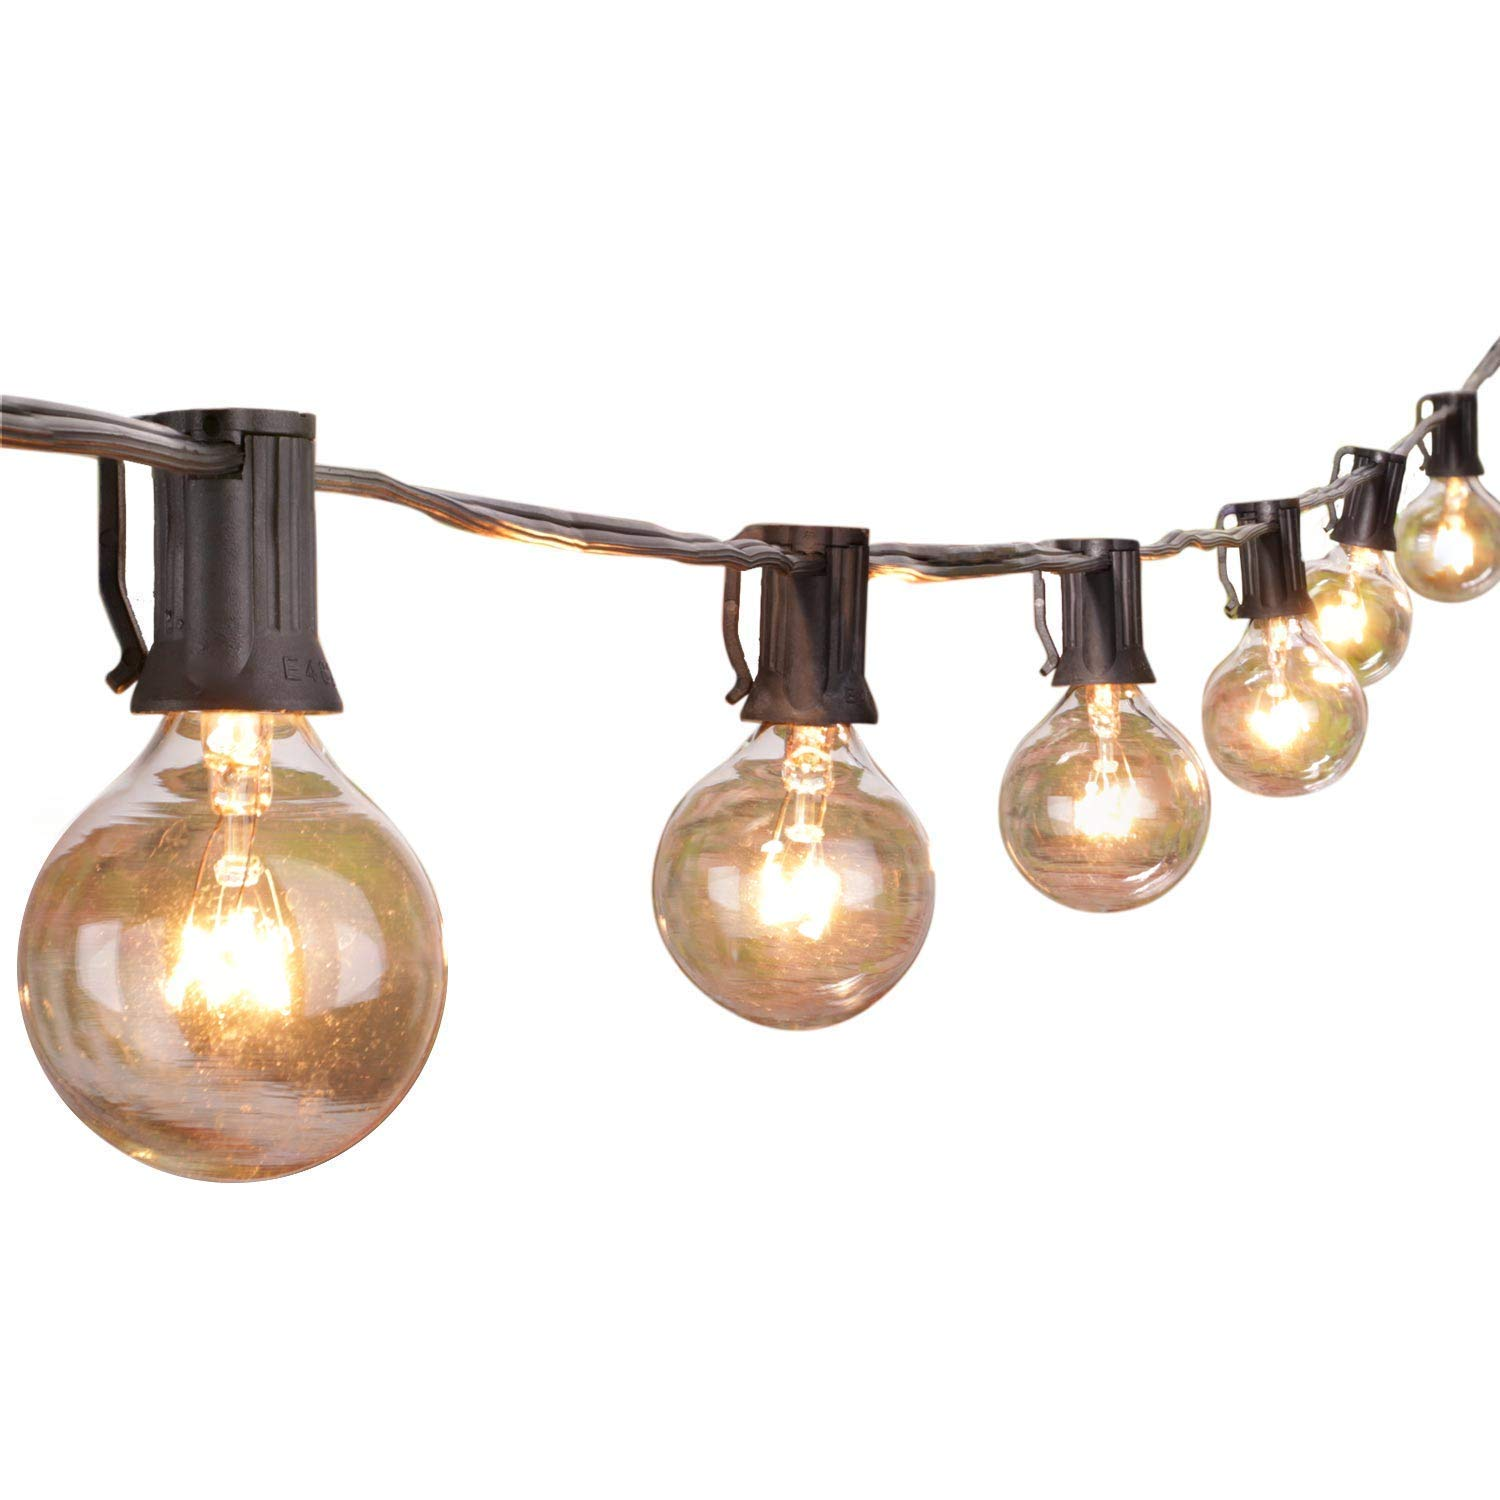 Details About 50ft Outdoor Patio String Lights With 50 Clear Globe G40 Bulbs Ul Certified For